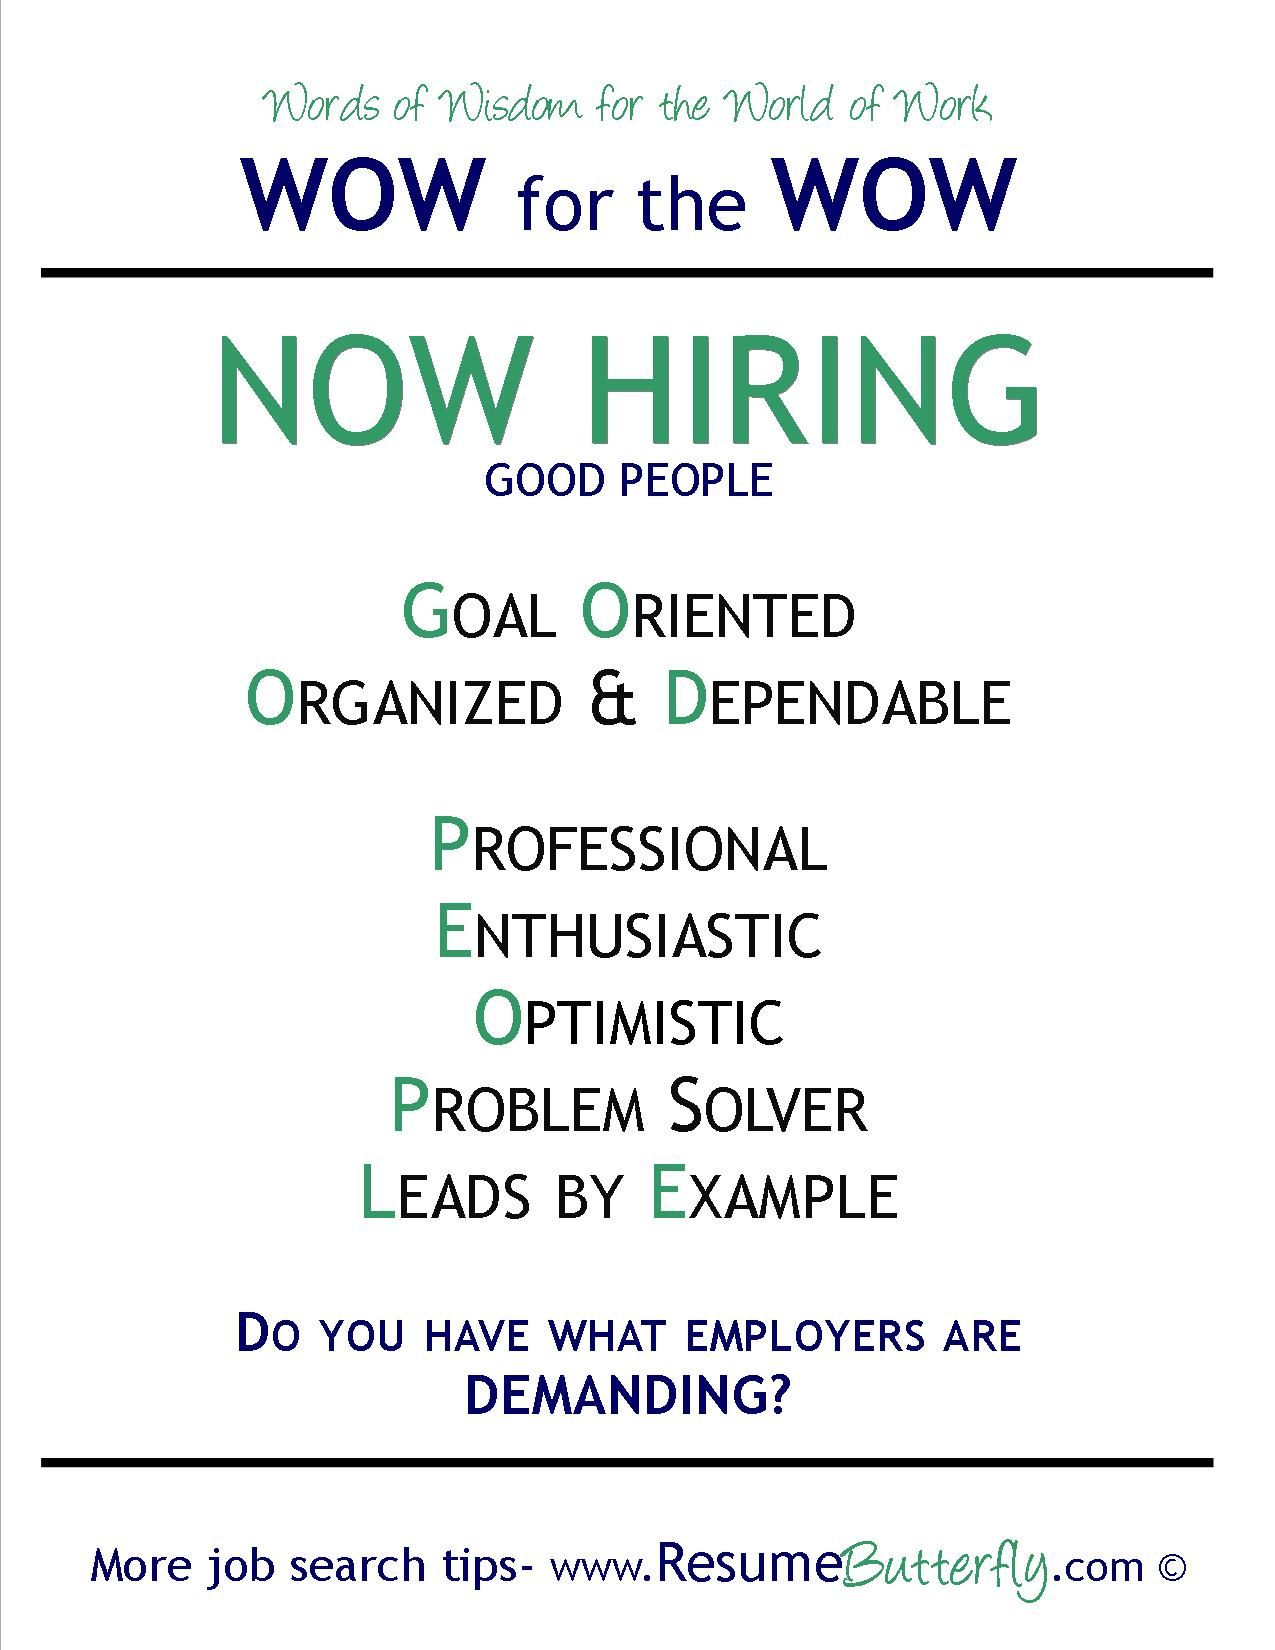 Now Hiring Good People Do You Have What Employers Are